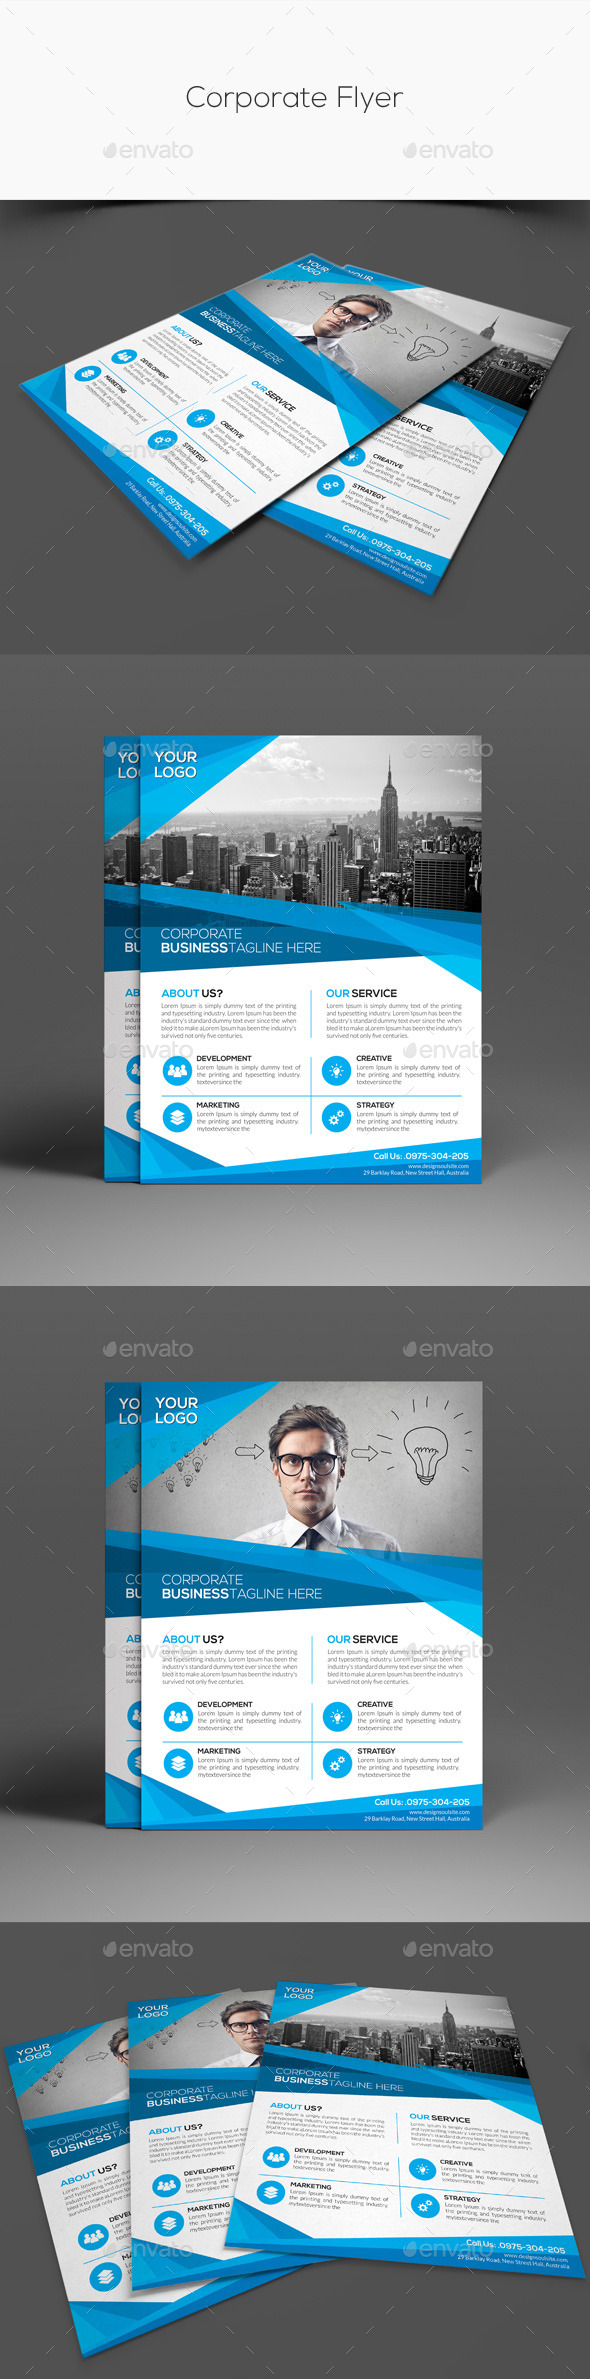 GraphicRiver Corporate Flyer 11439136